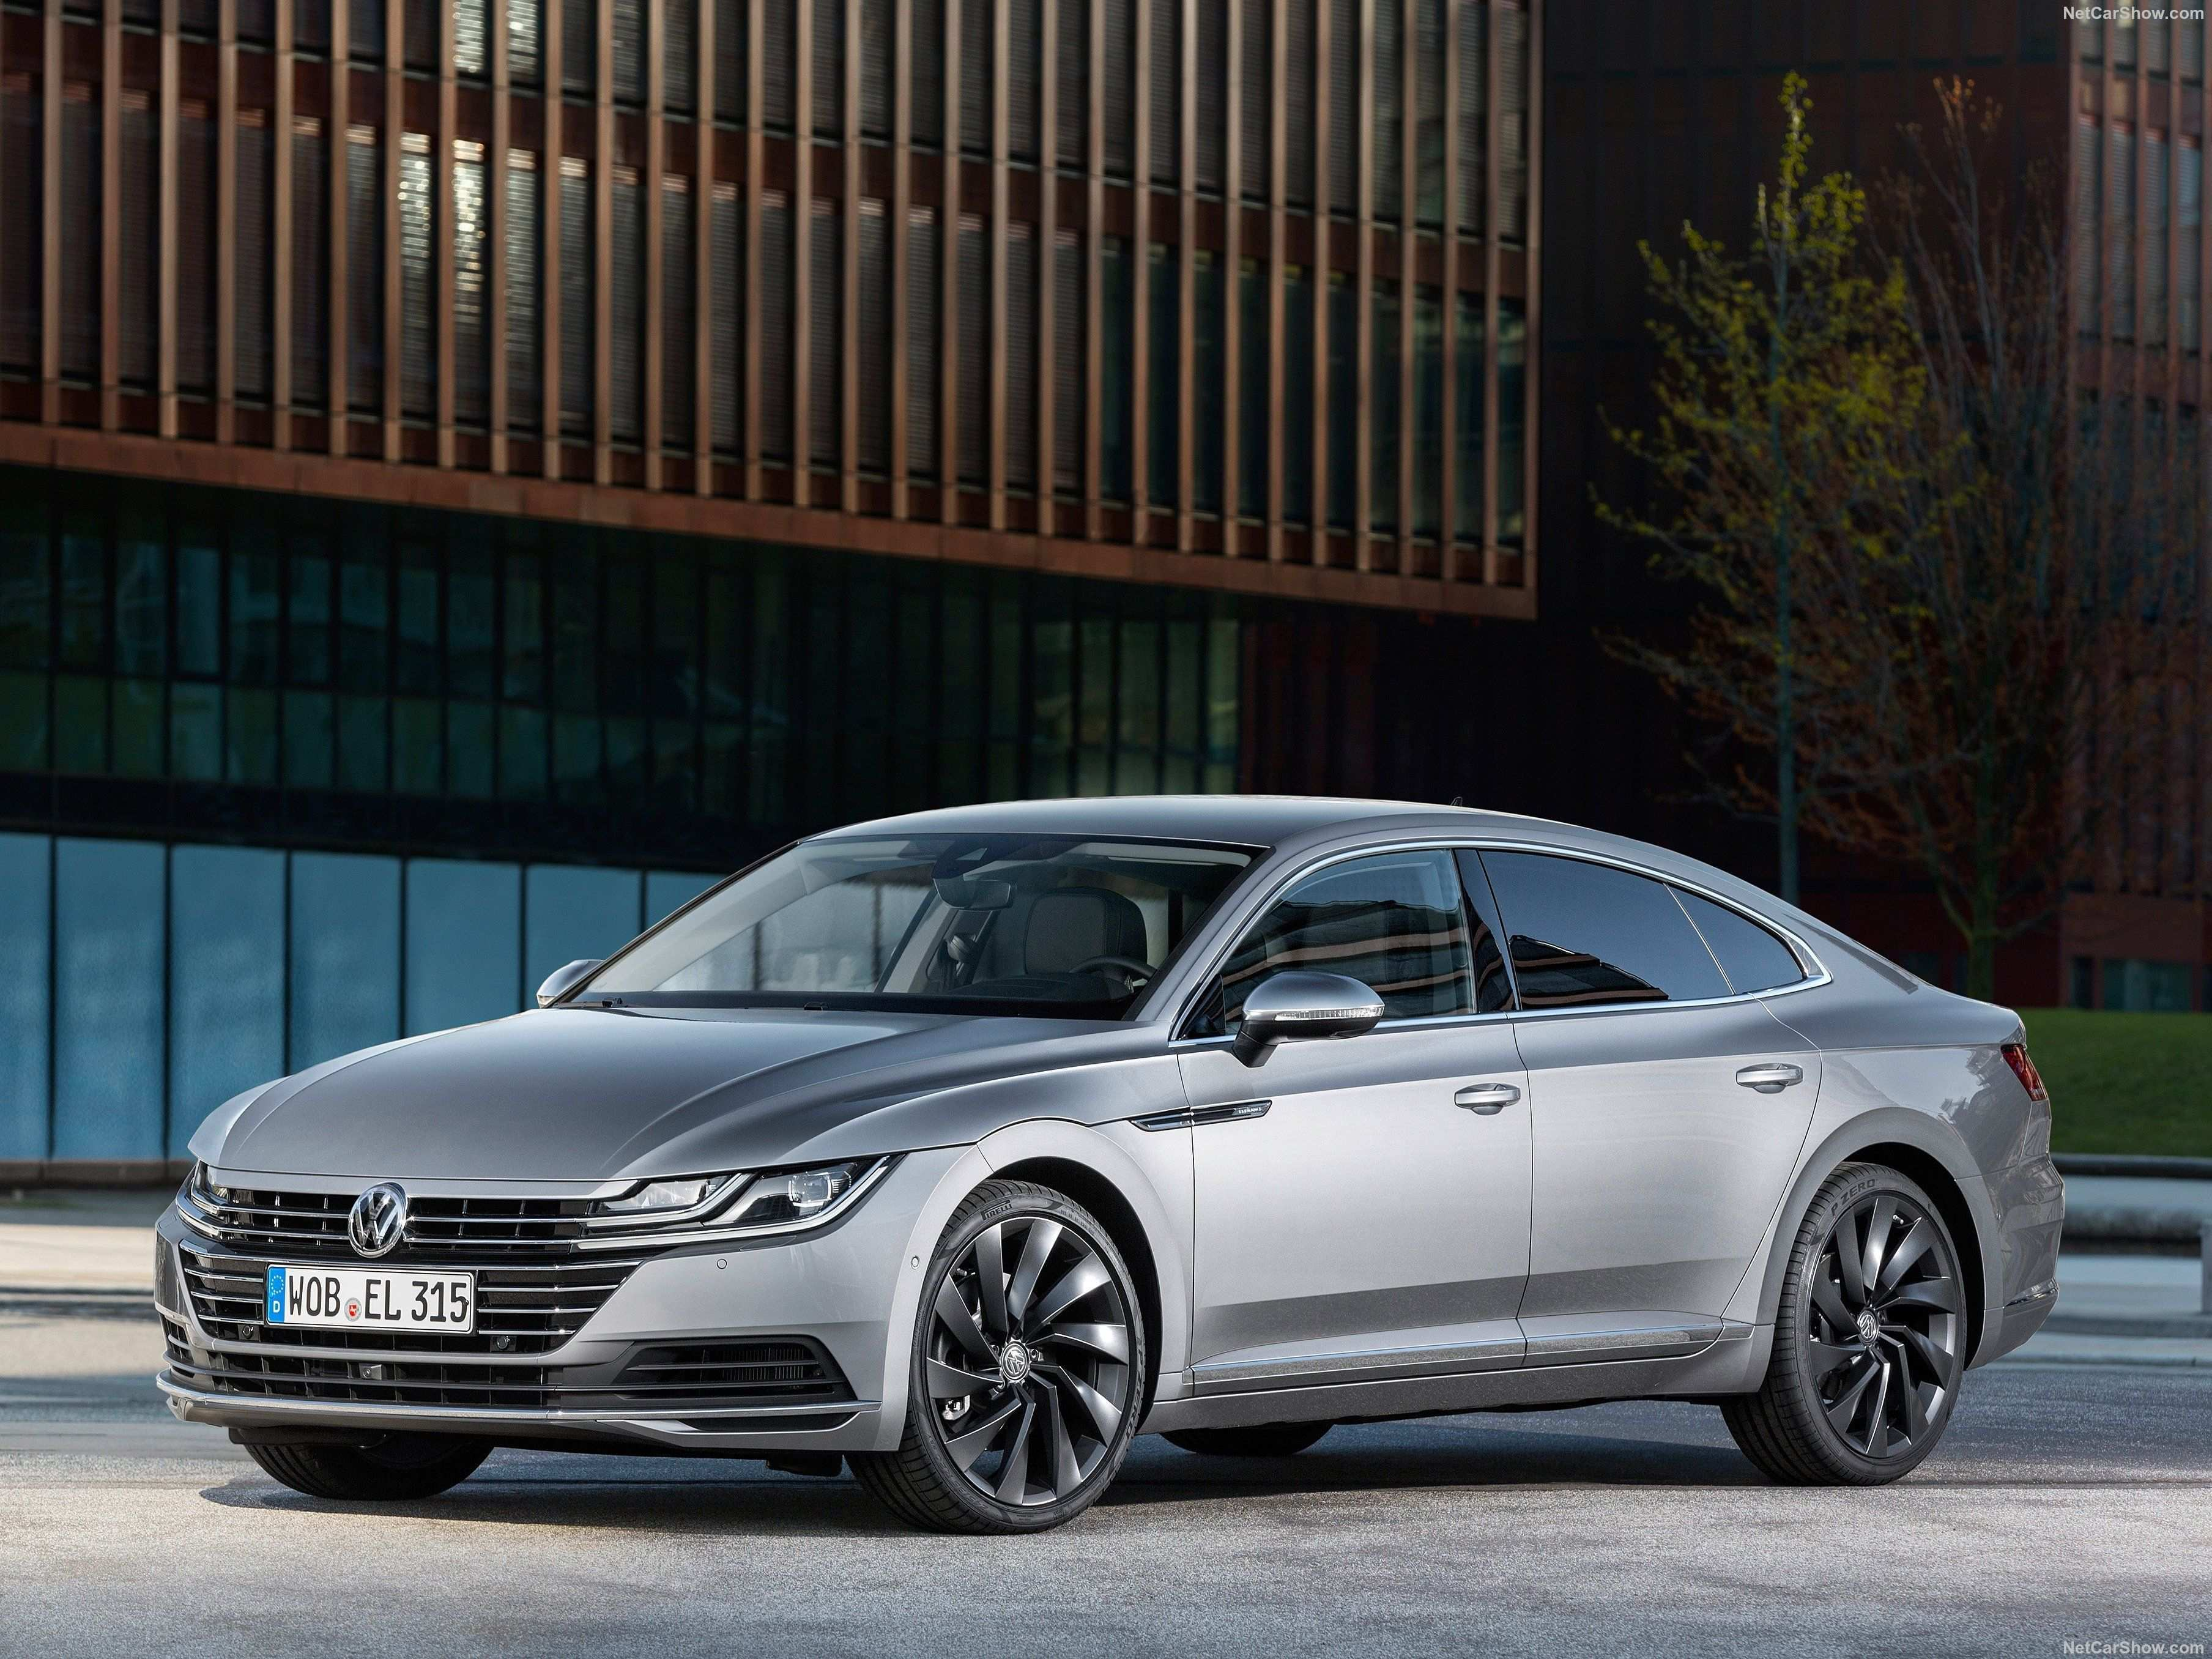 64 New Volkswagen 2019 Lineup Review for Volkswagen 2019 Lineup